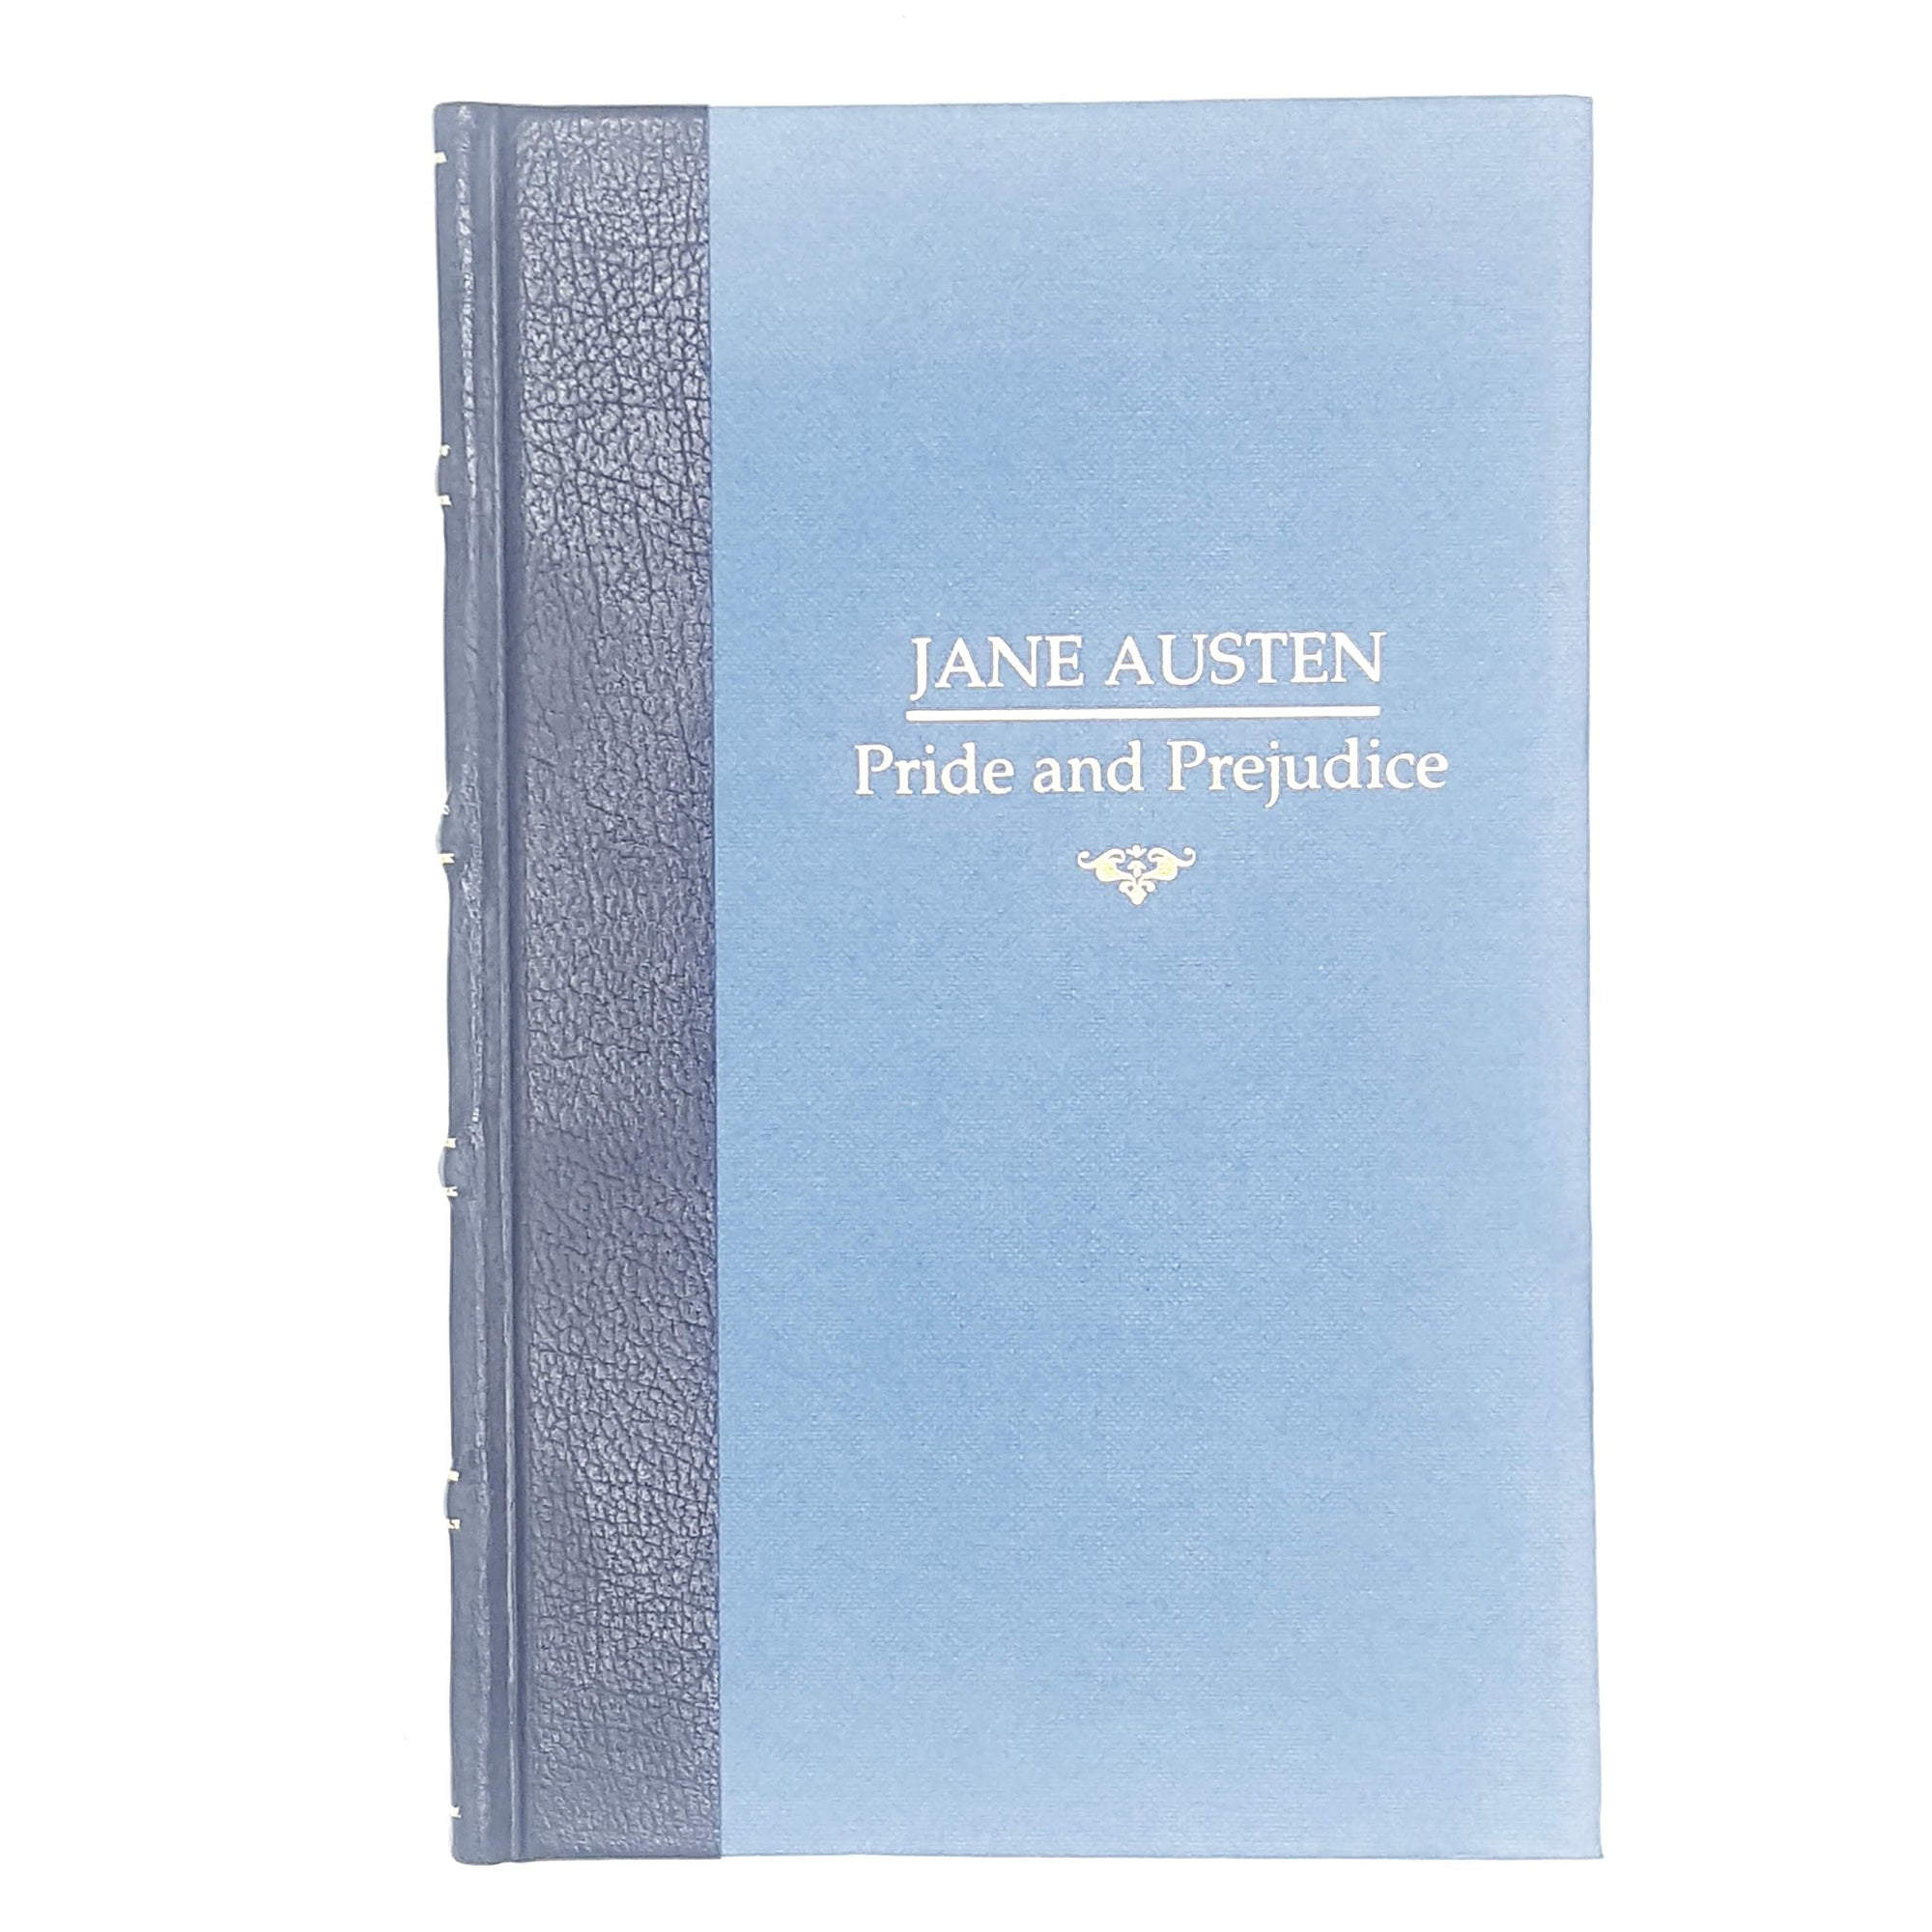 Pride and Prejudice by Jane Austen 1992 Country House Library